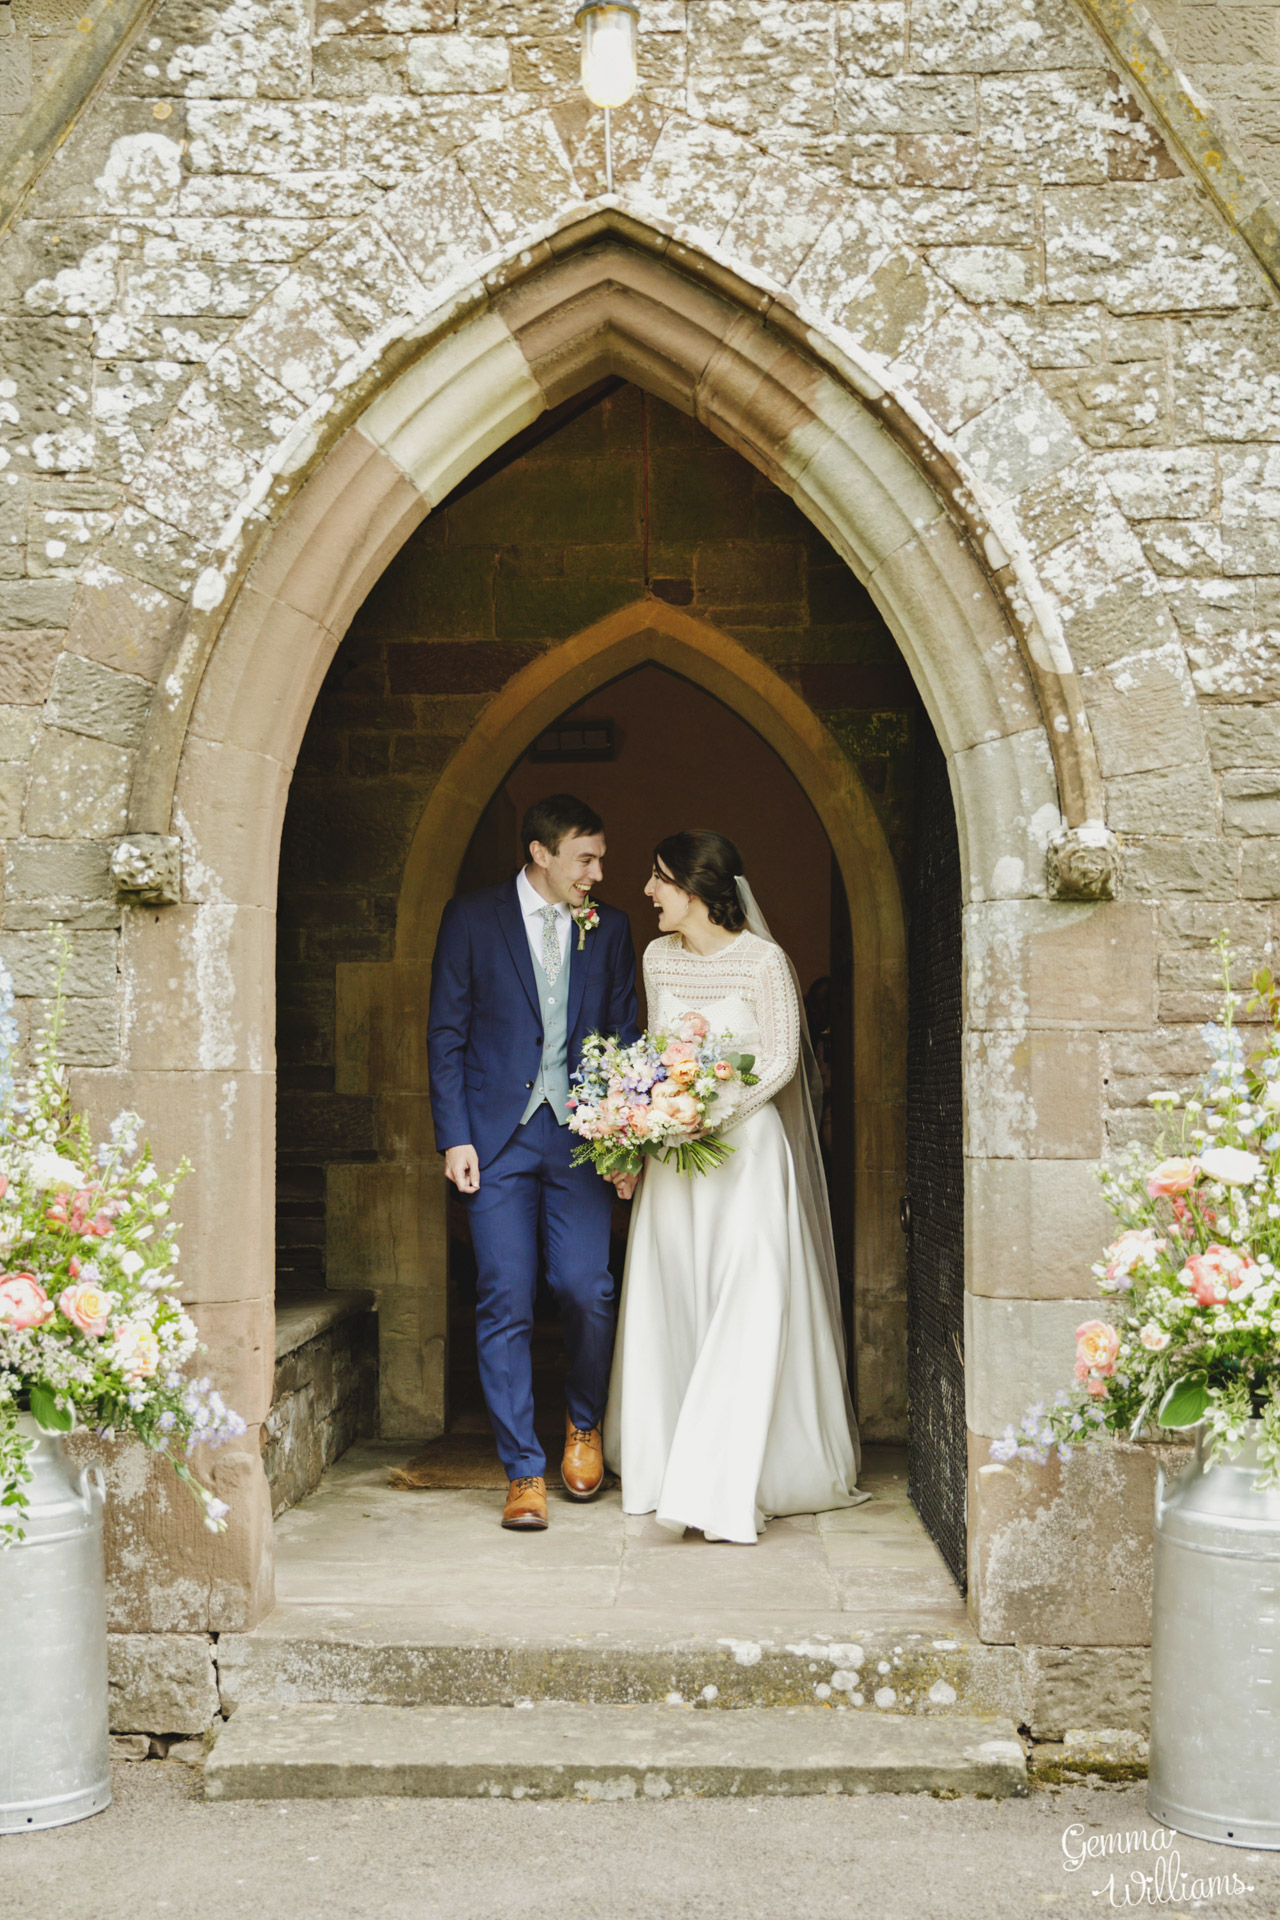 HaybarnWedding_GemmaWilliamsPhoto061.jpg